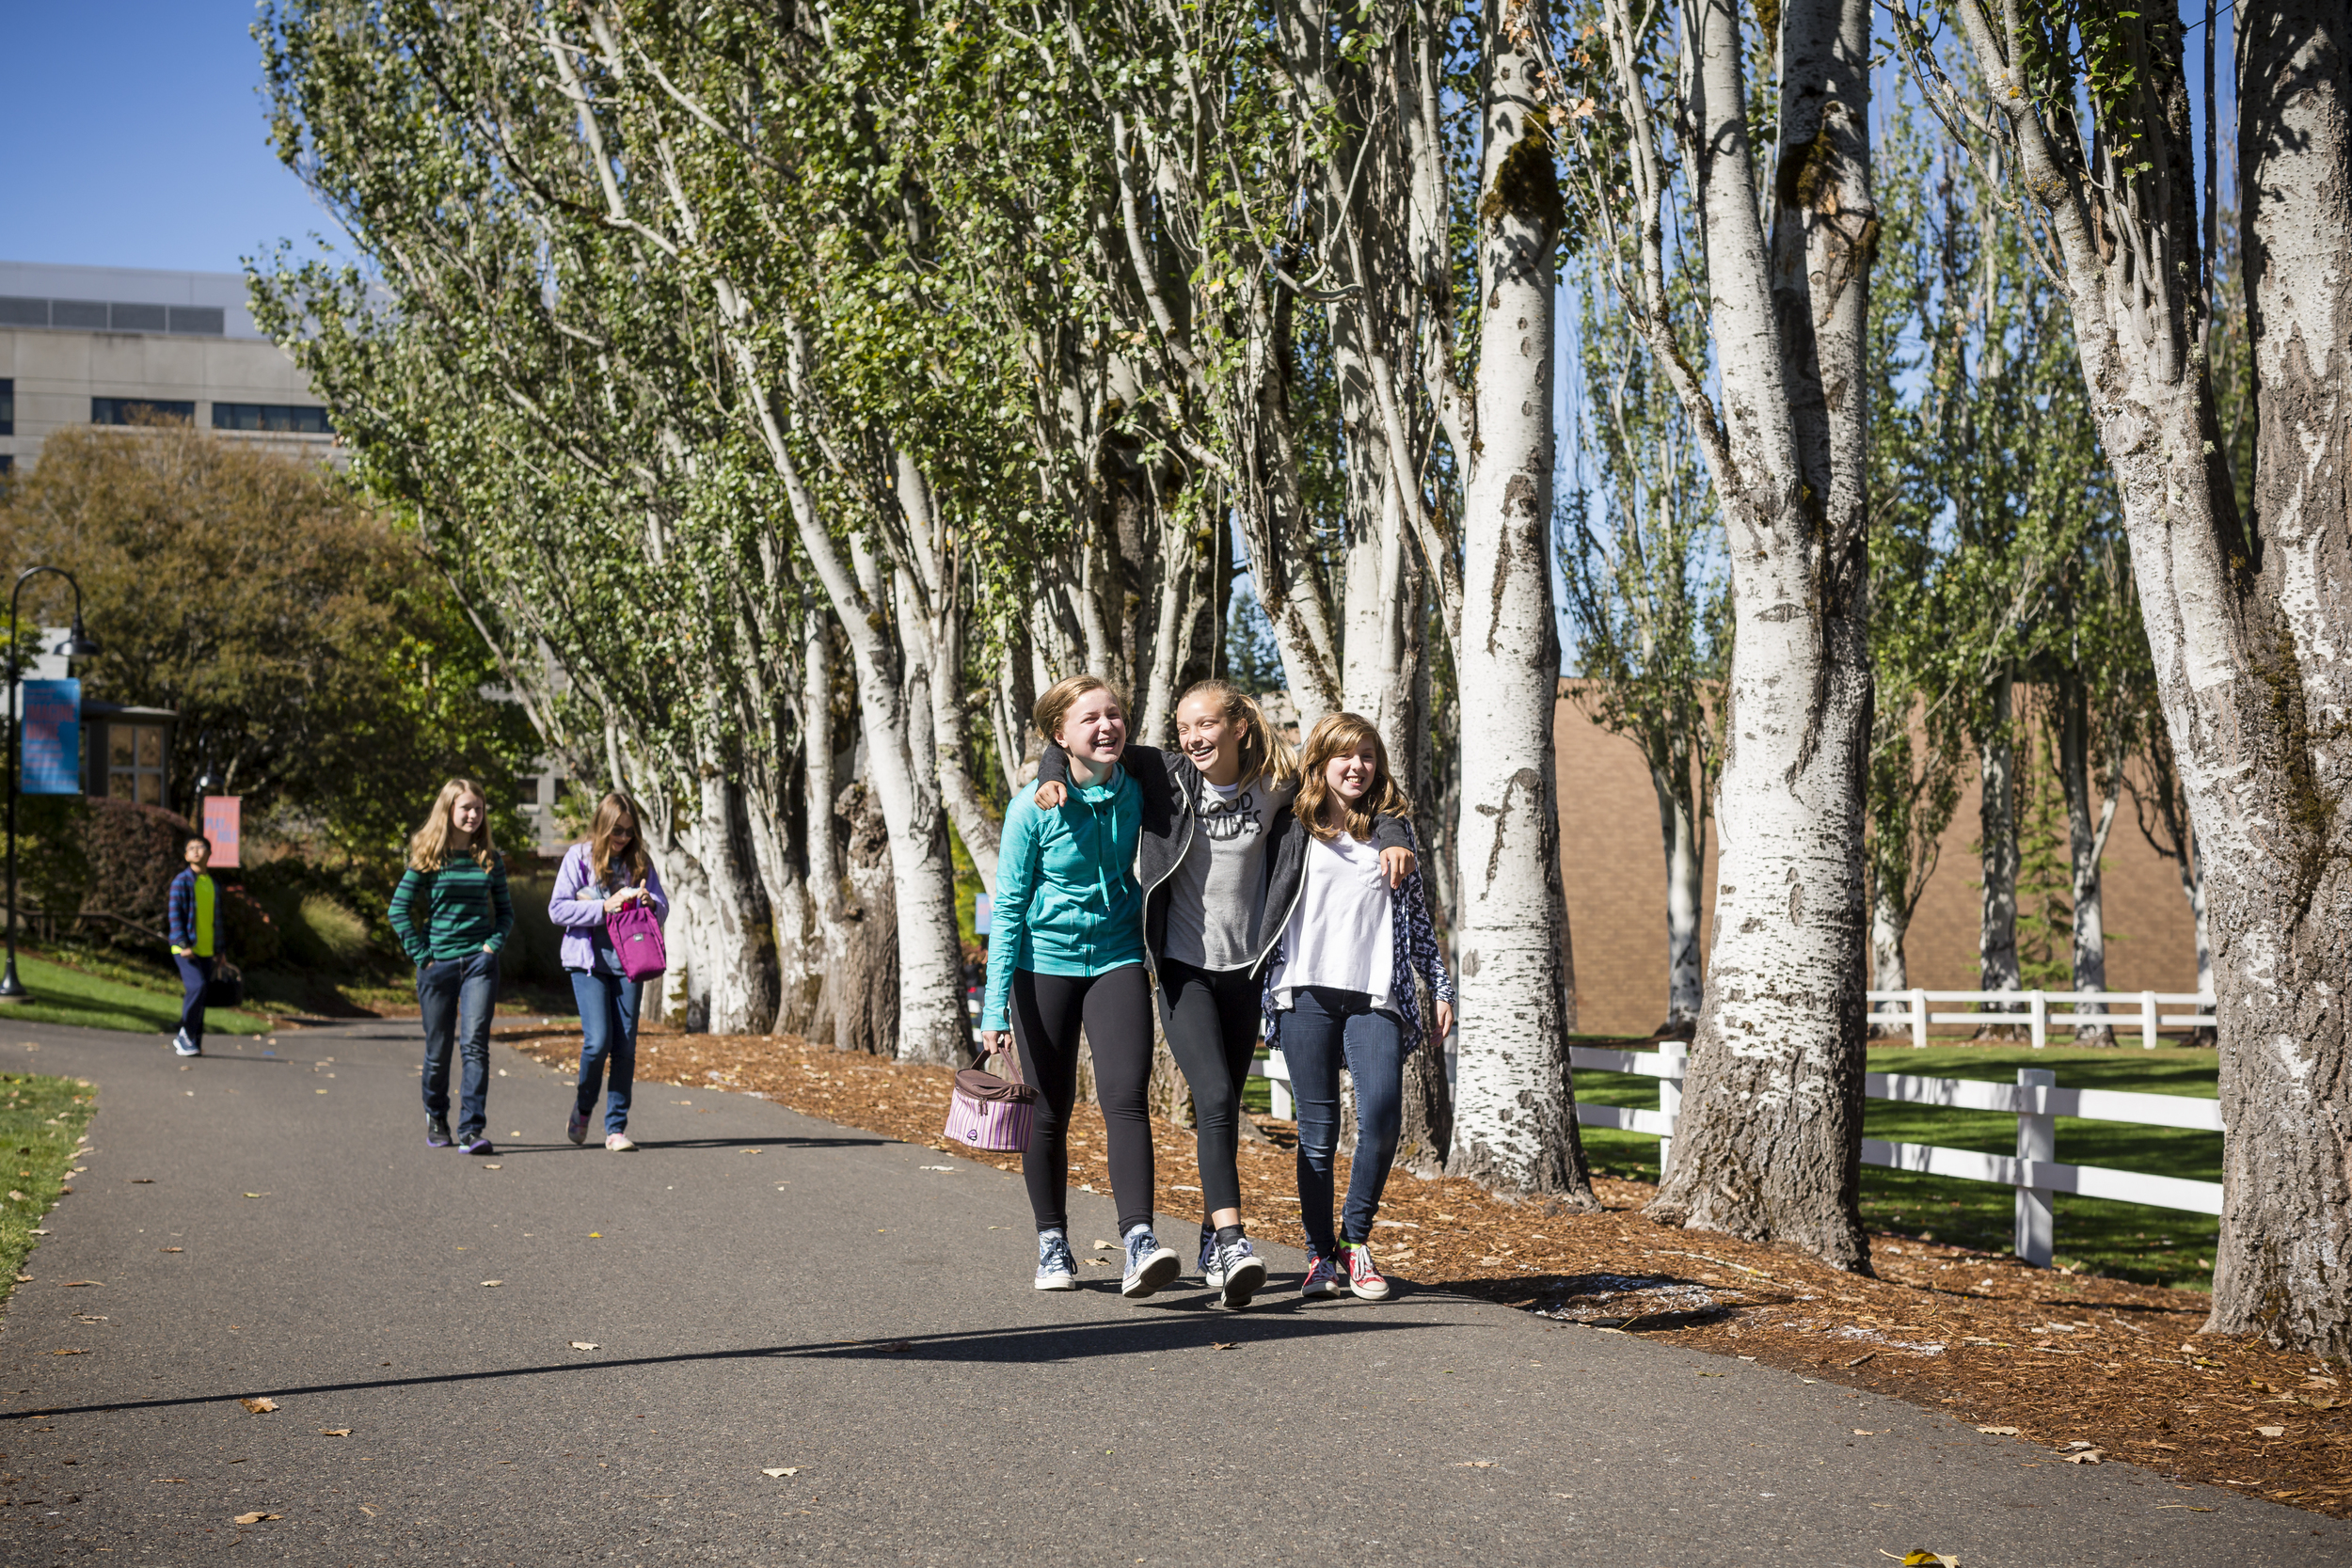 Catlin Gabel: An independent preschool through 12th grade day school in Portland, Oregon